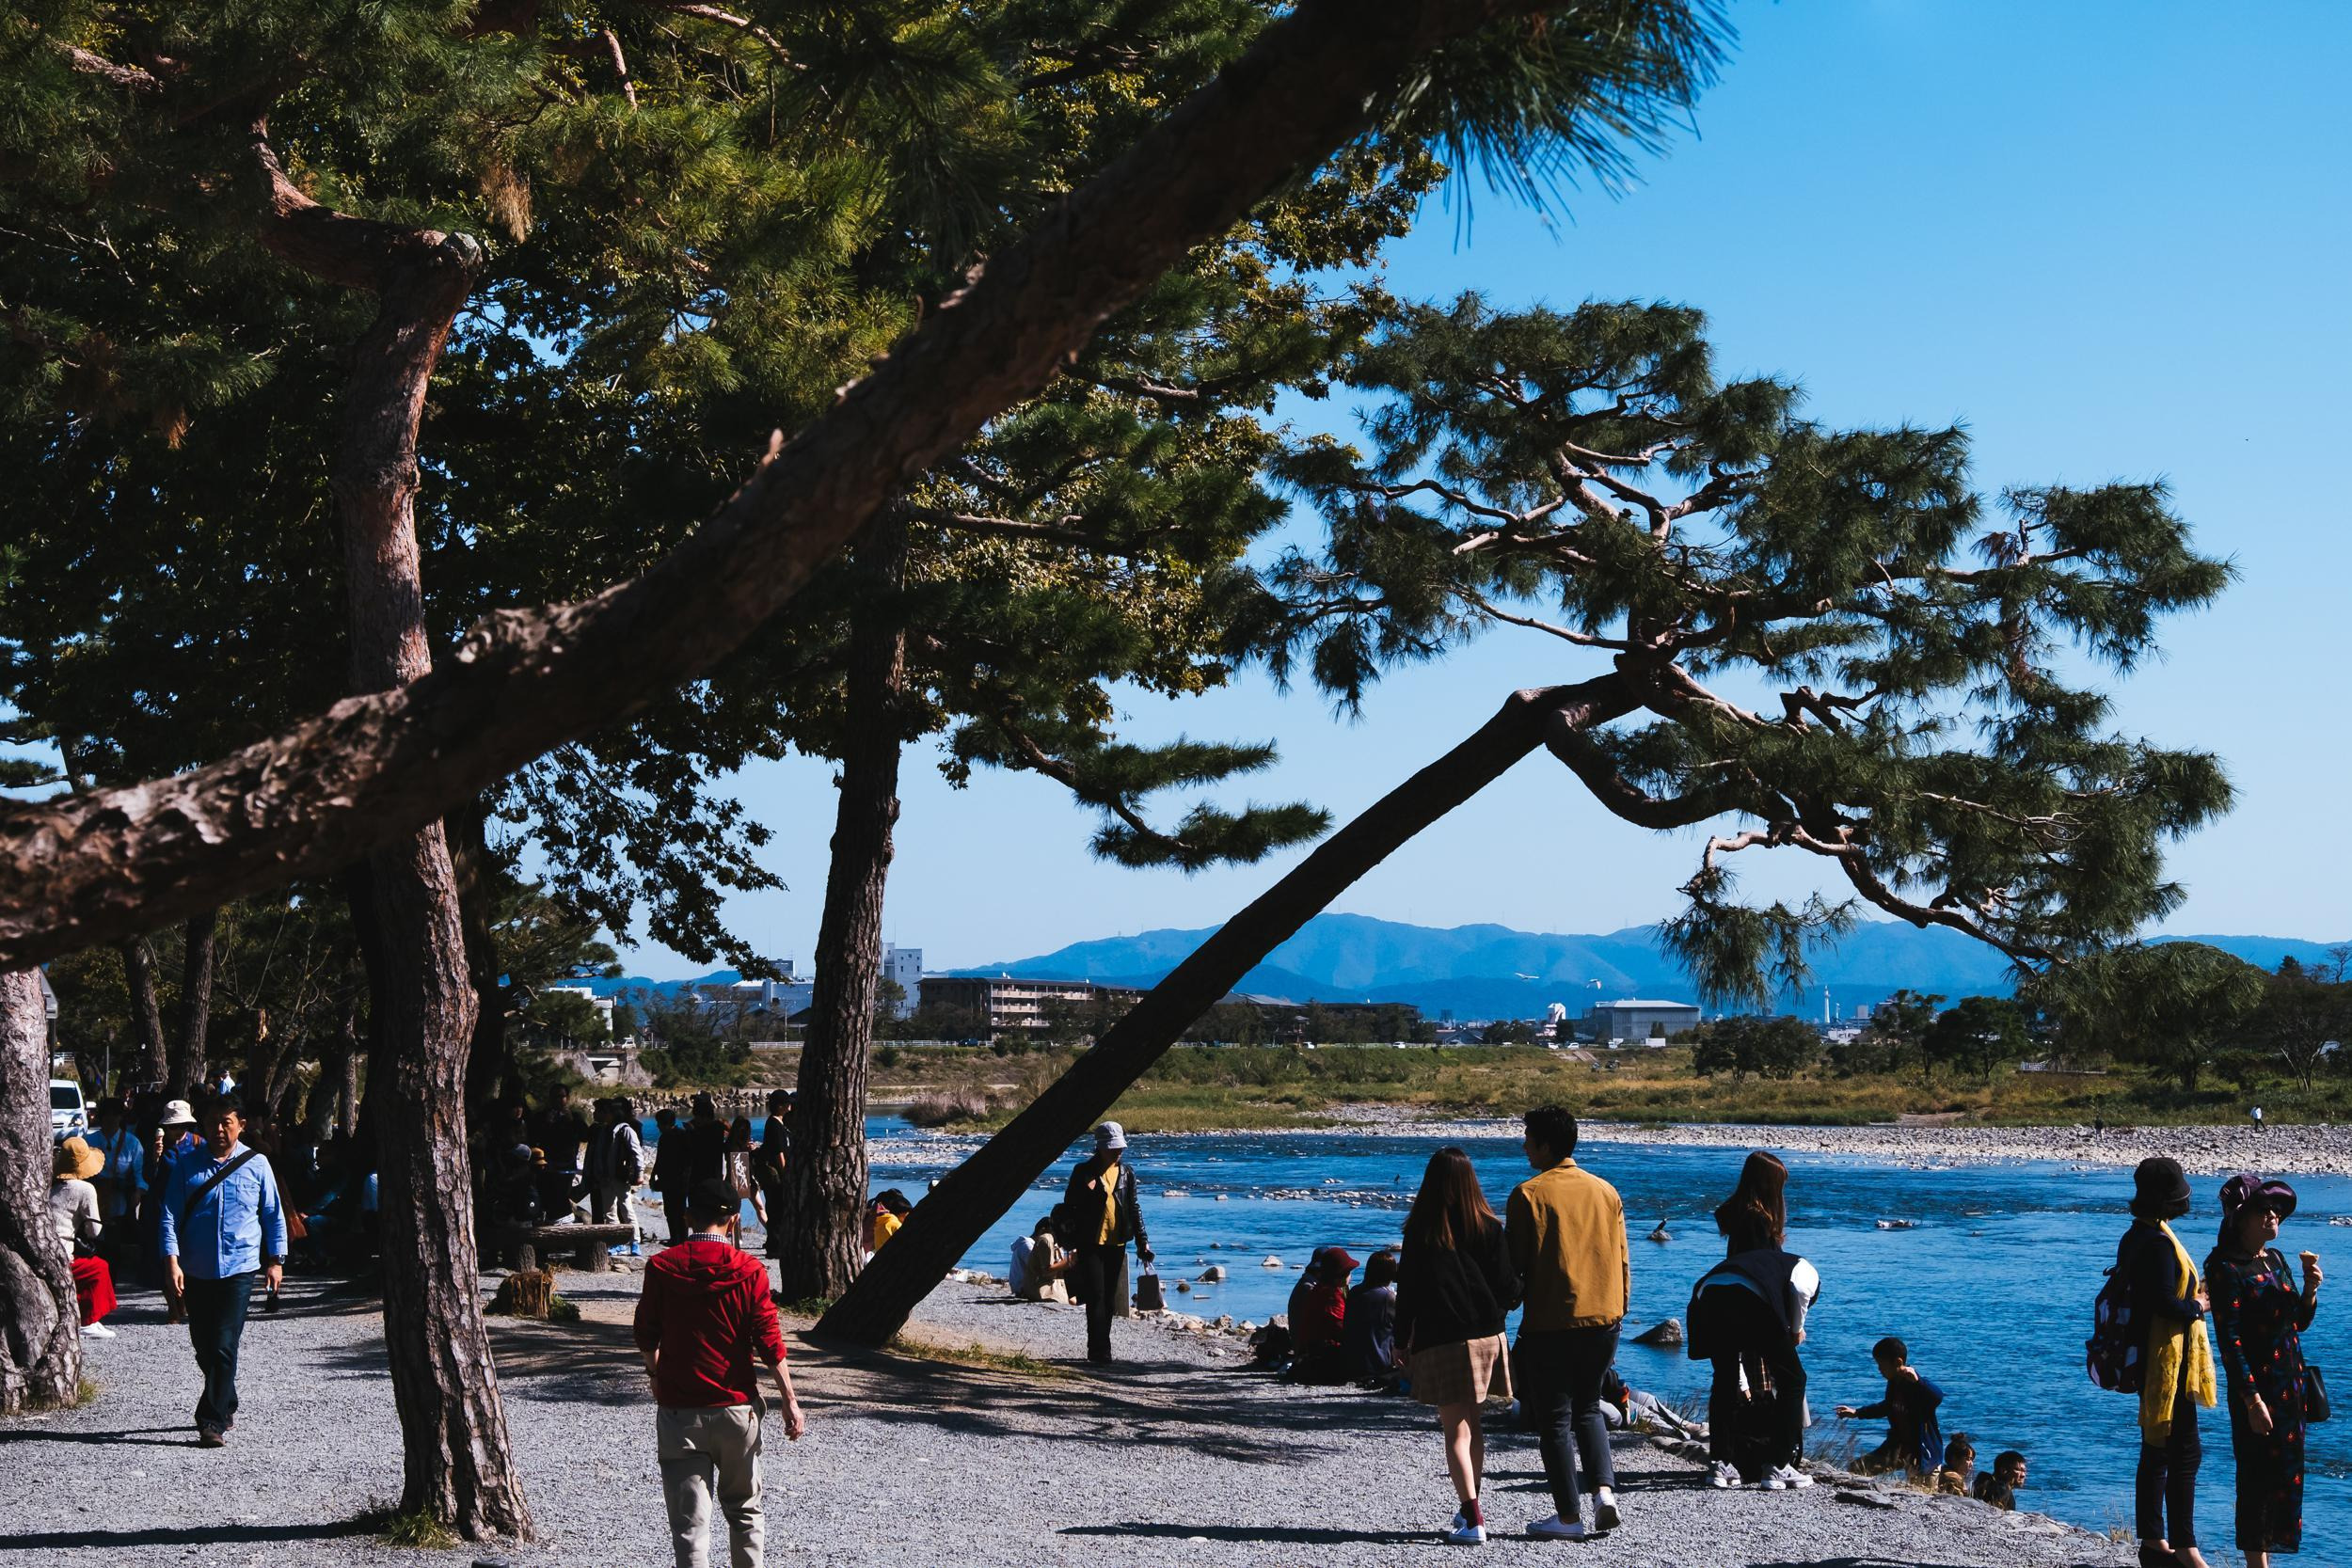 Sightseeing on a Budget in Kyoto